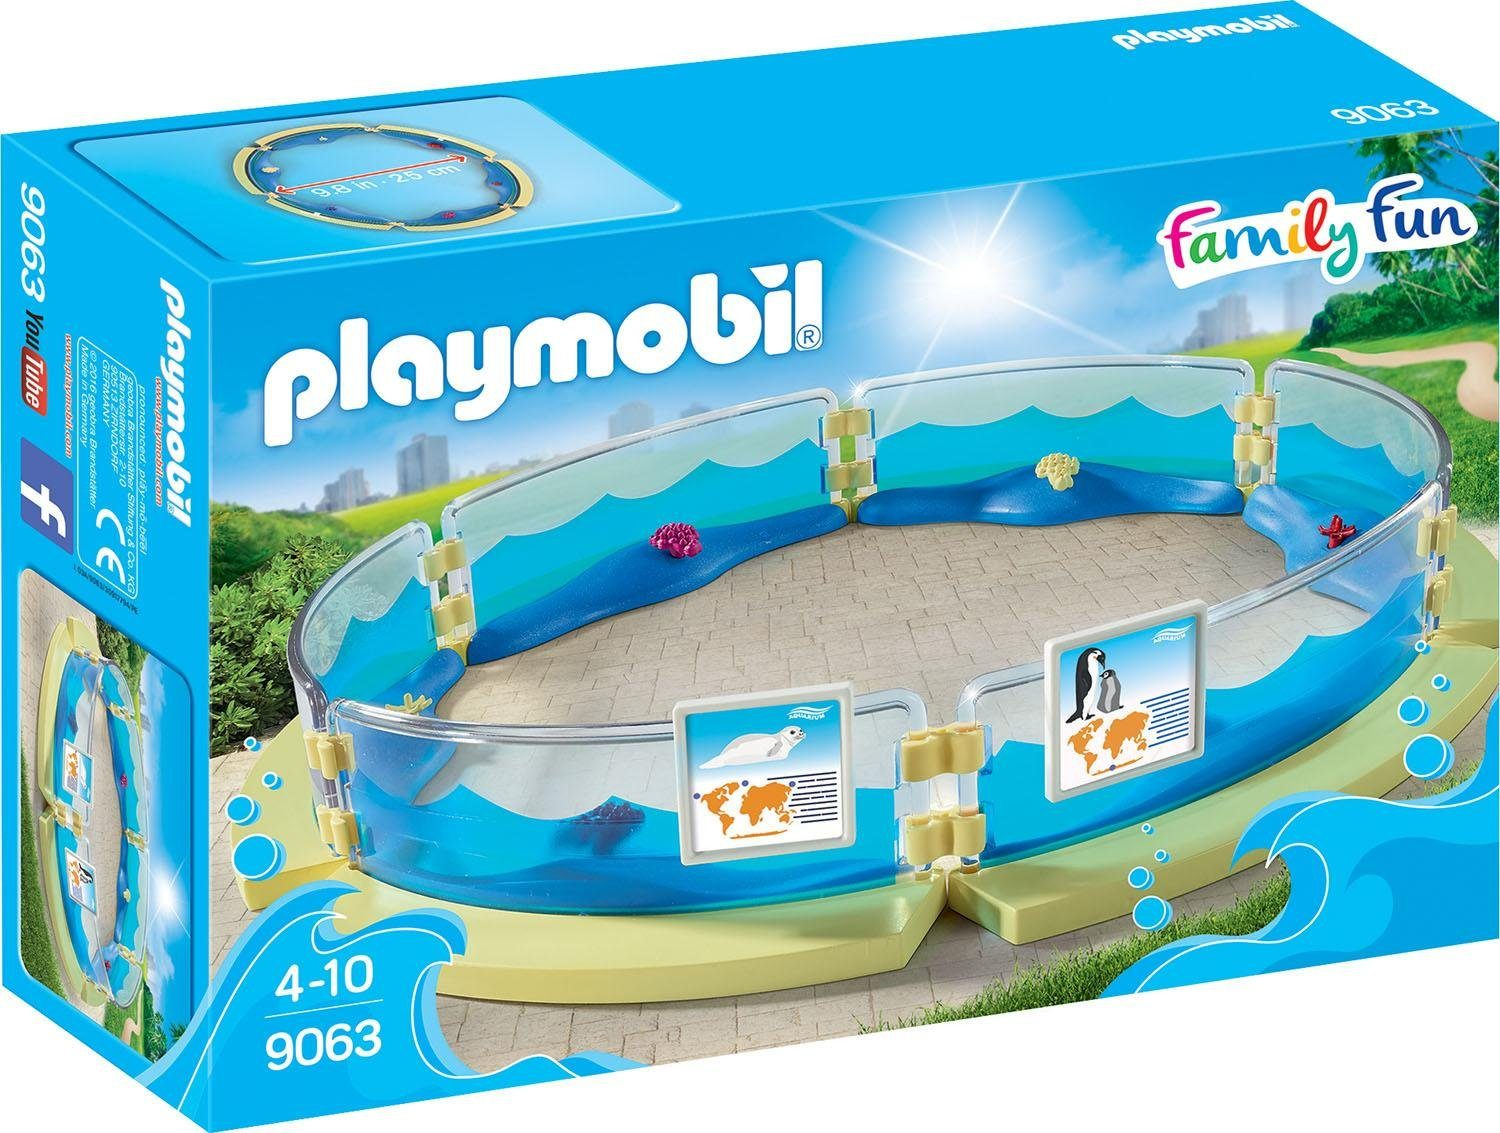 Playmobil® Meerestierbecken (9063), »Family Fun«